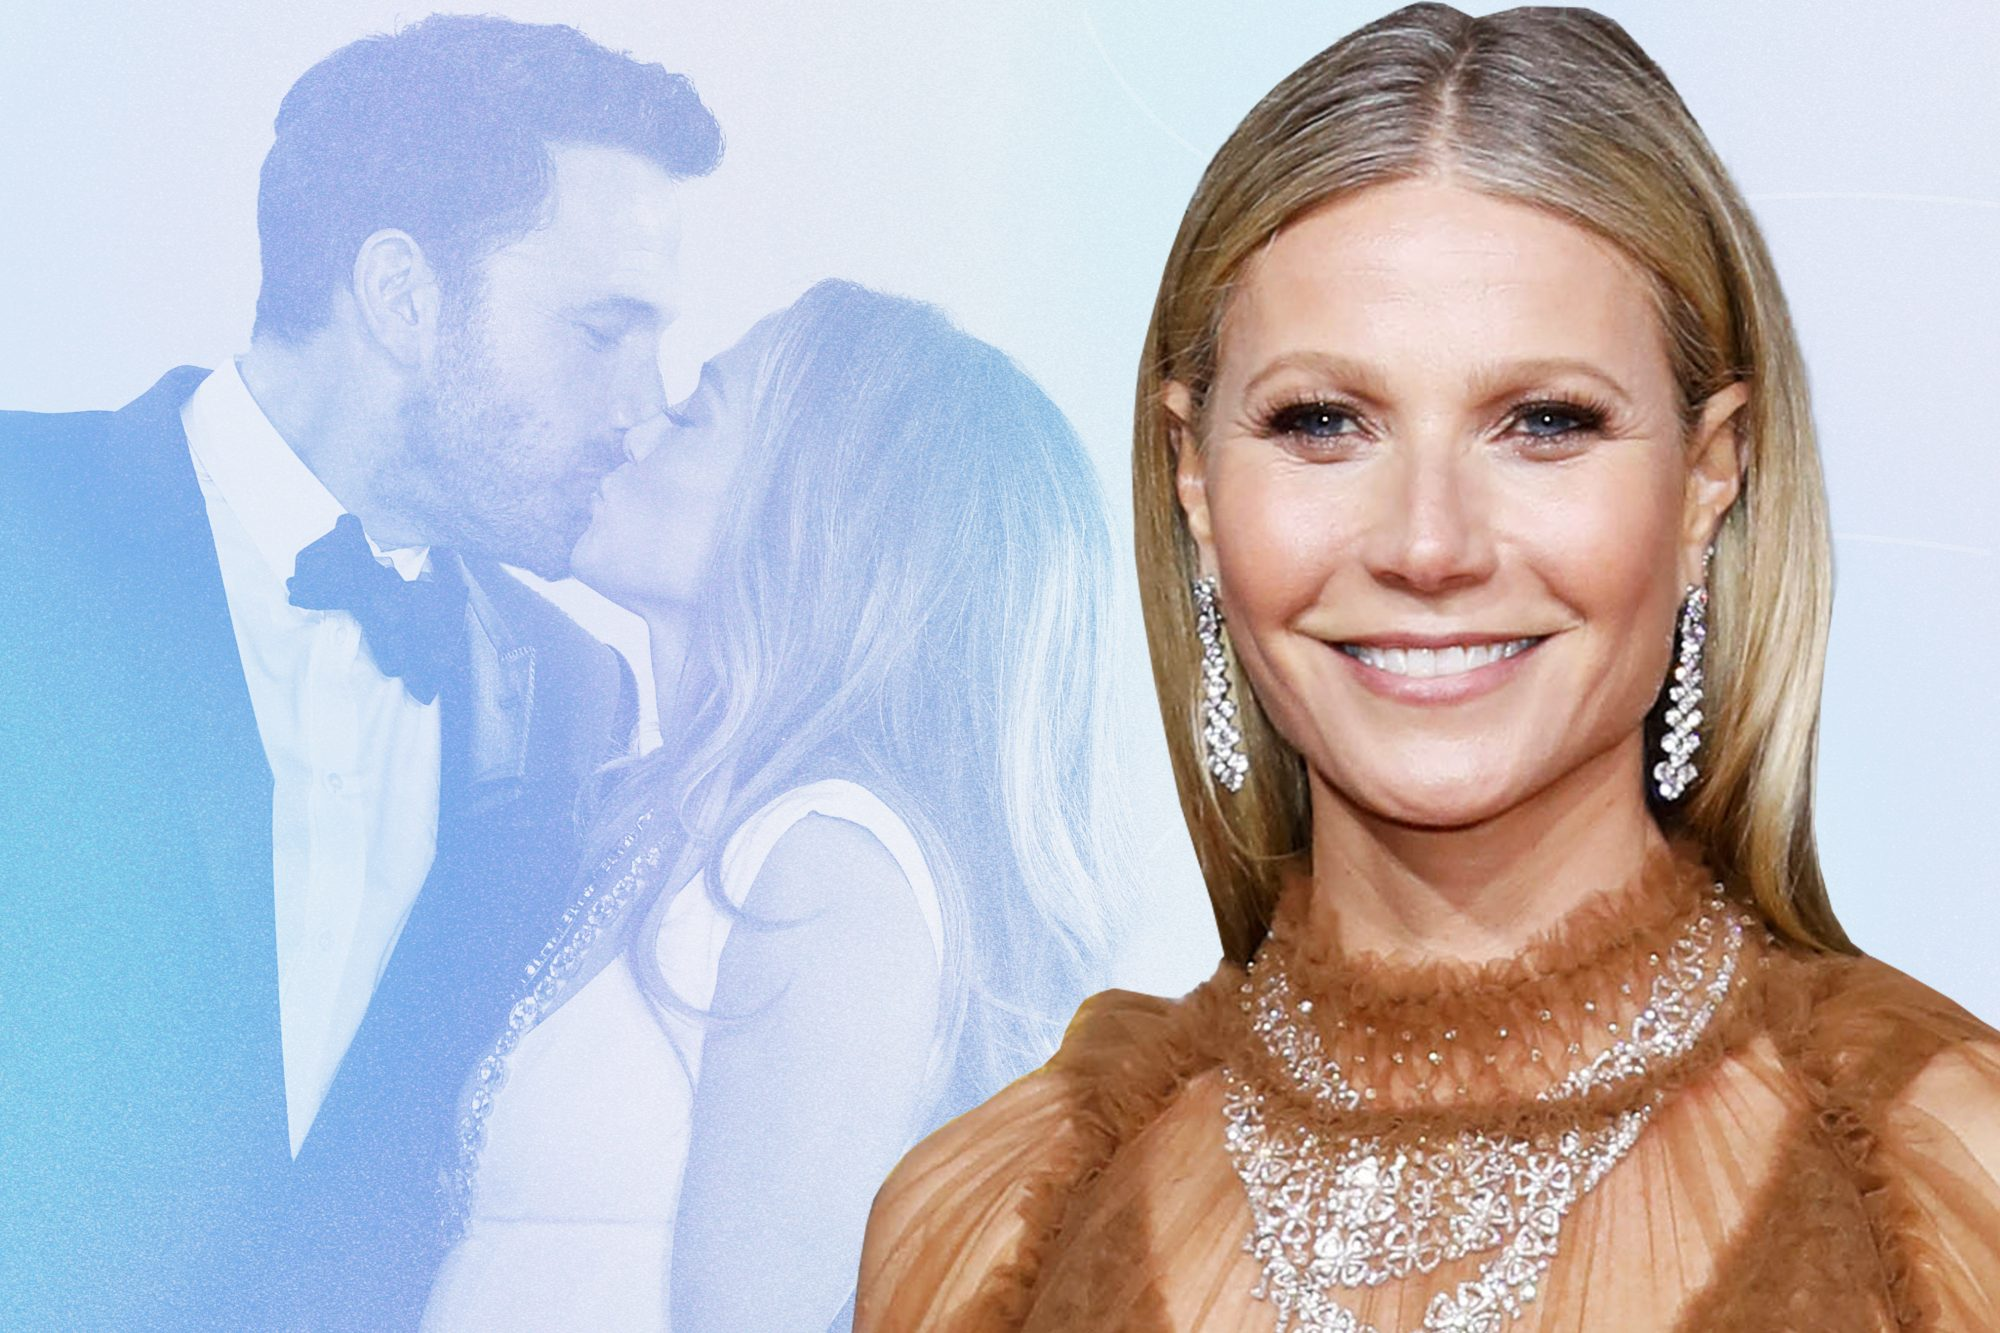 Gwyneth-Paltrow-Had-the-Sweetest-Reaction-to-Ex-Ben-Affleck-and-Jennifer-Lopez's-Red-Carpet-Return-GettyImages-1339647589-1192181925